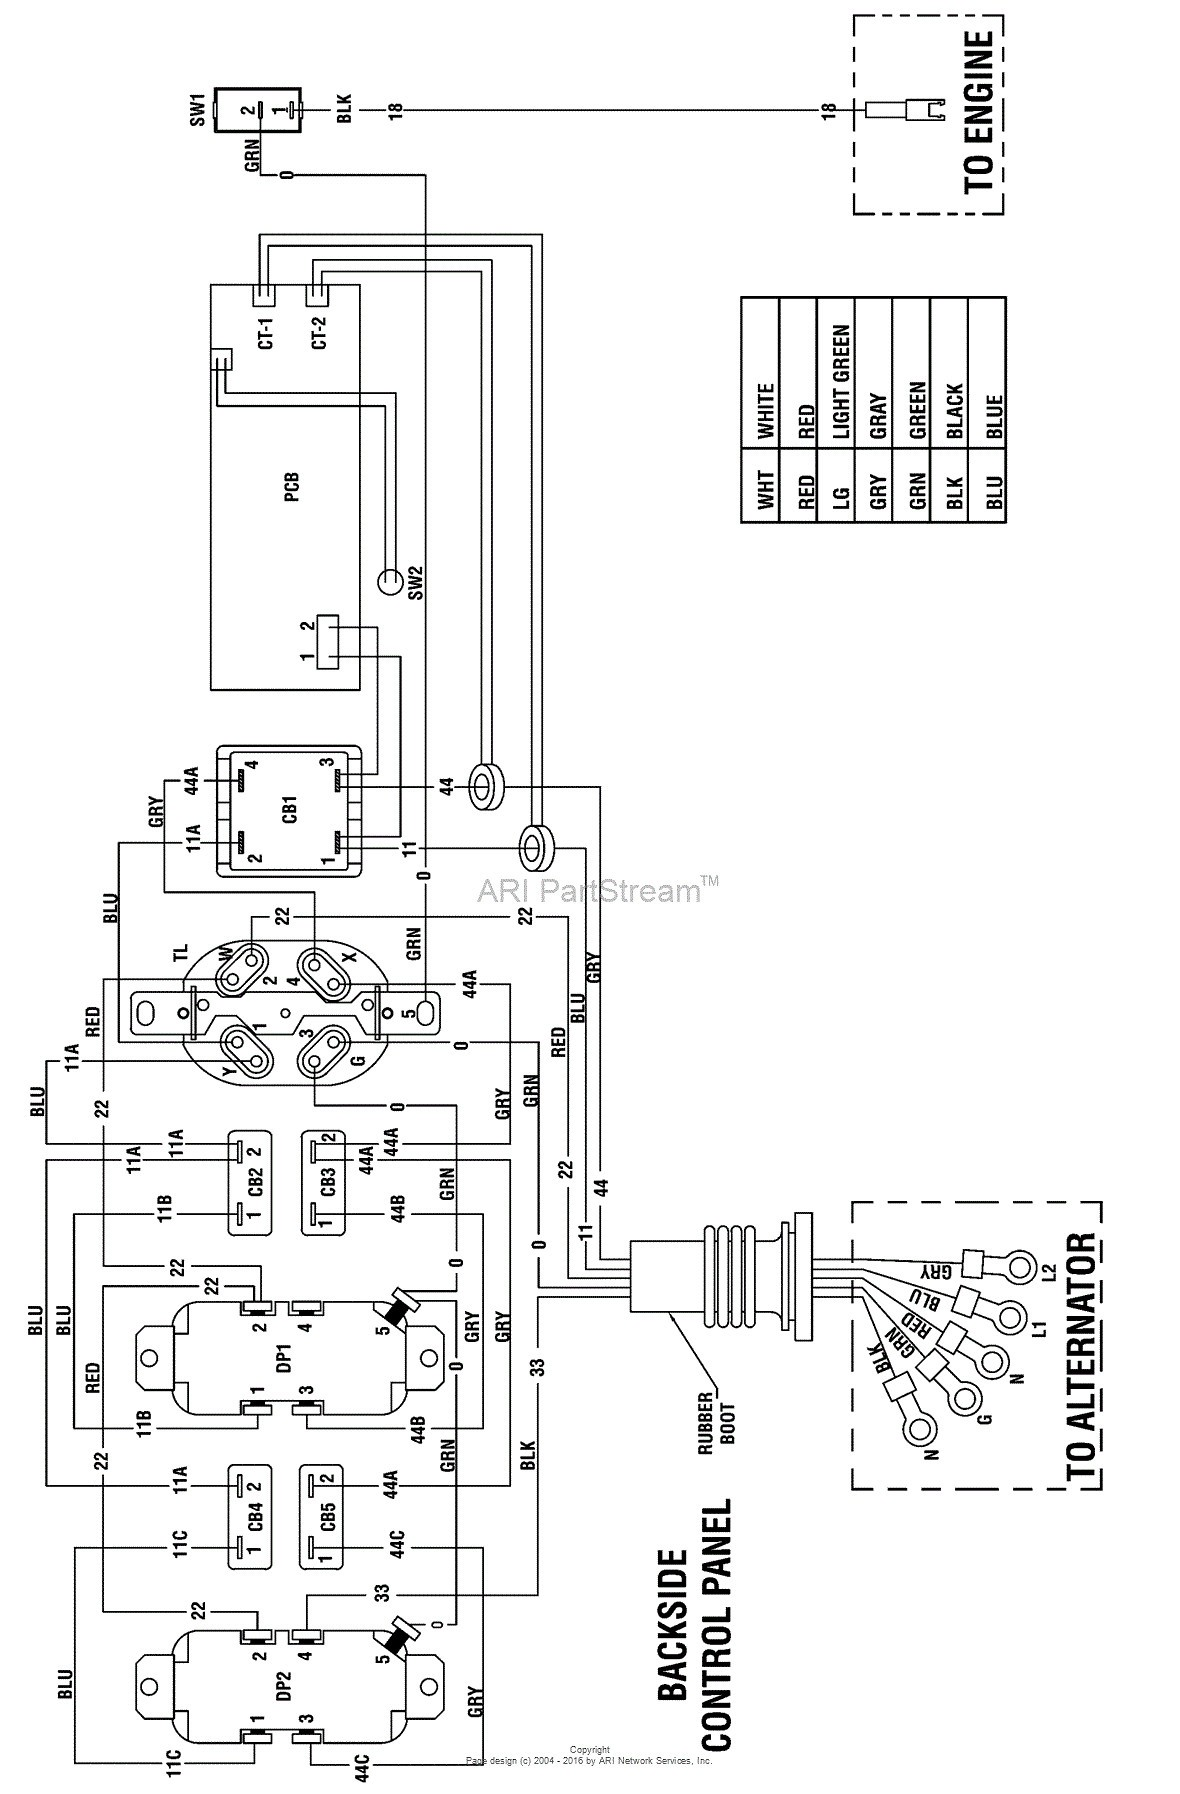 Briggs and Stratton 11 Hp Engine Diagram Briggs and Stratton Ignition Coil Wiring Diagram Image Of Briggs and Stratton 11 Hp Engine Diagram